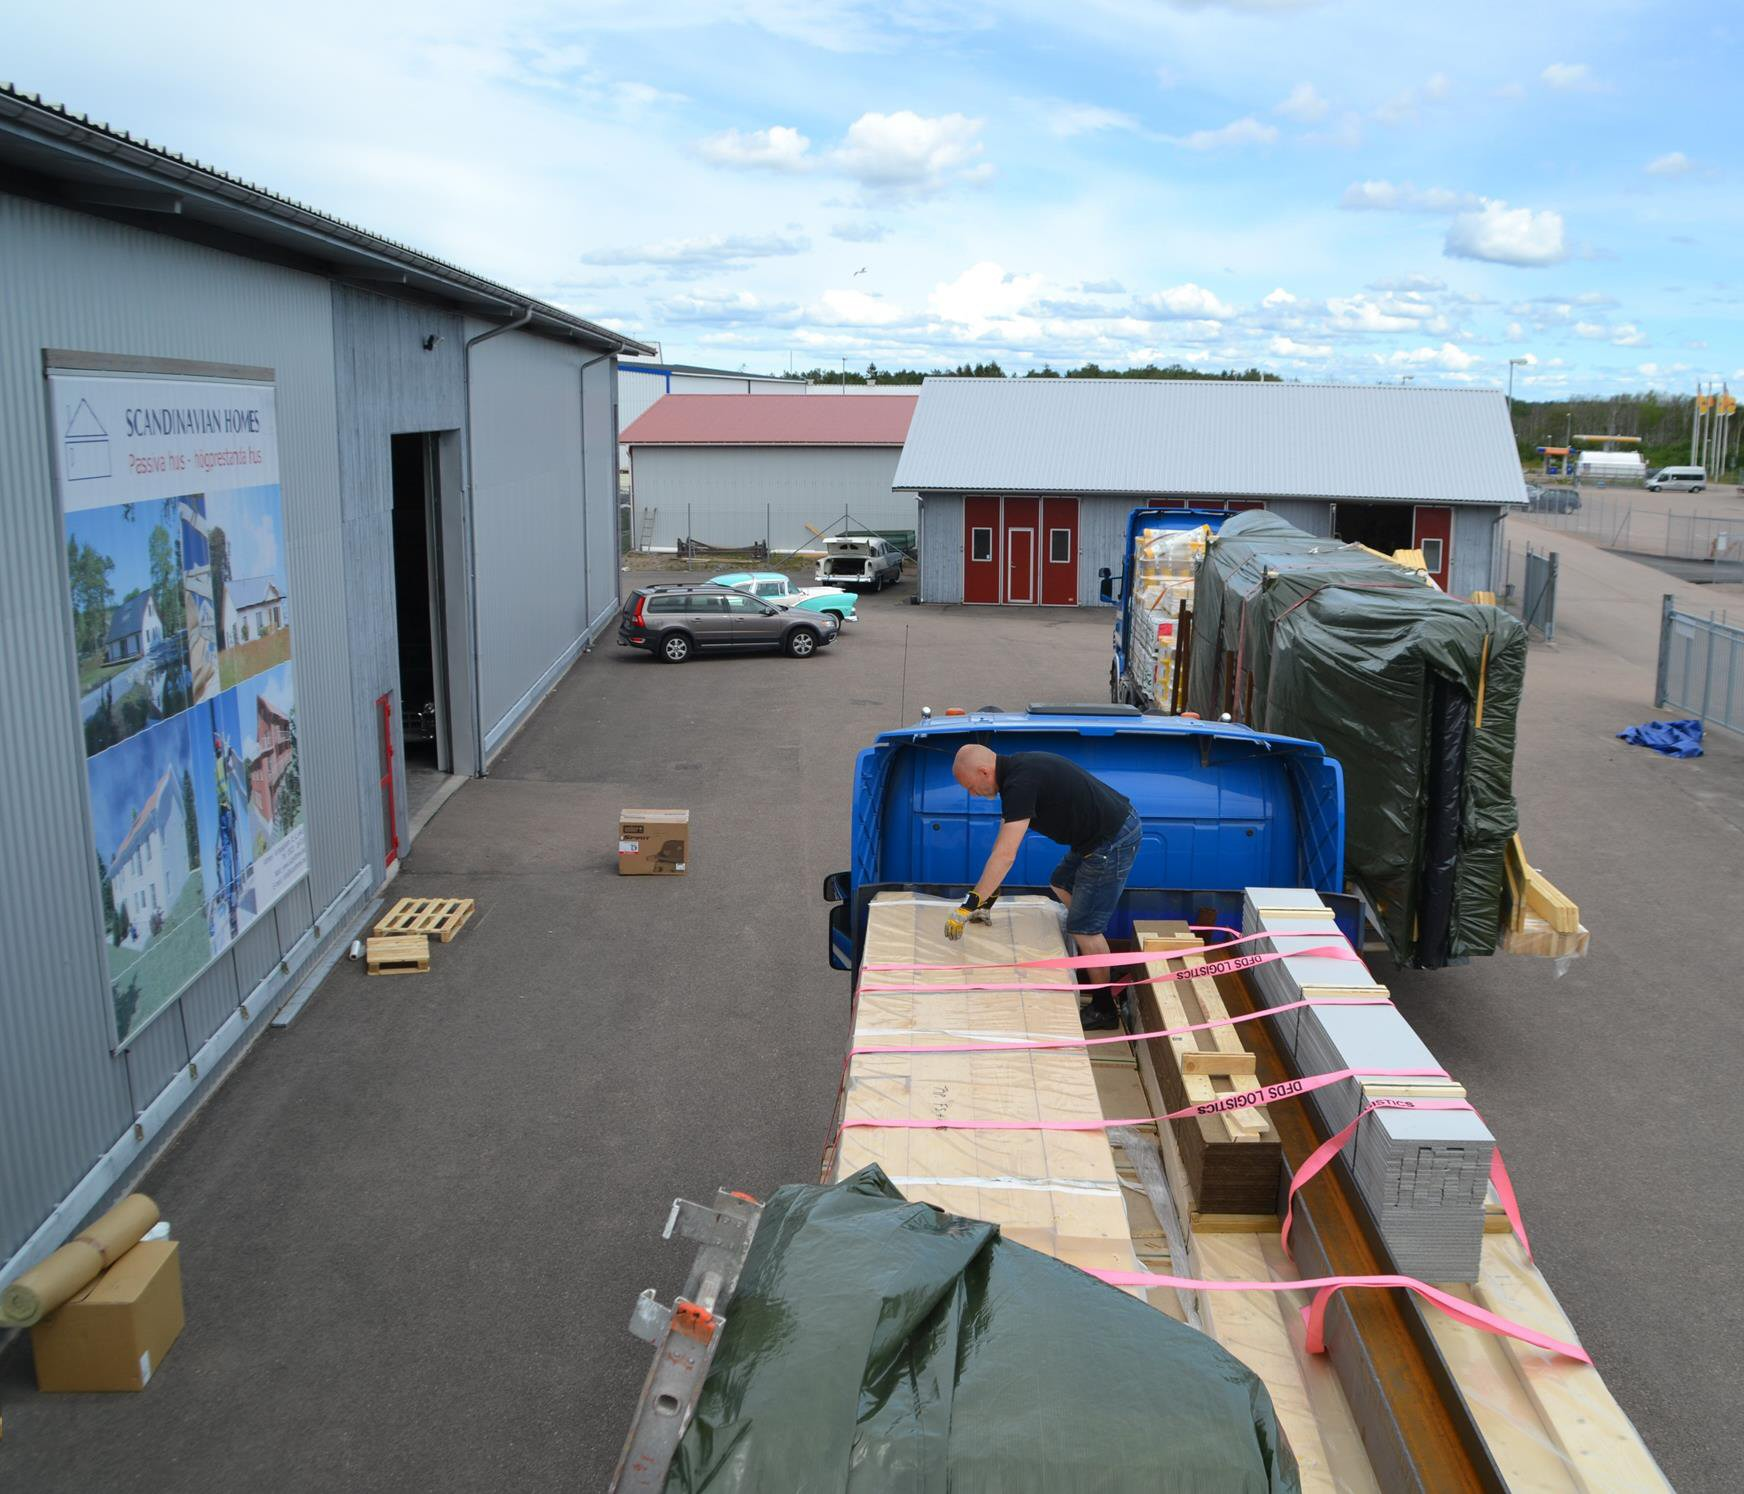 Practically all materials needed for a complete passive house are loaded onto the trailers at the Scanhome factory